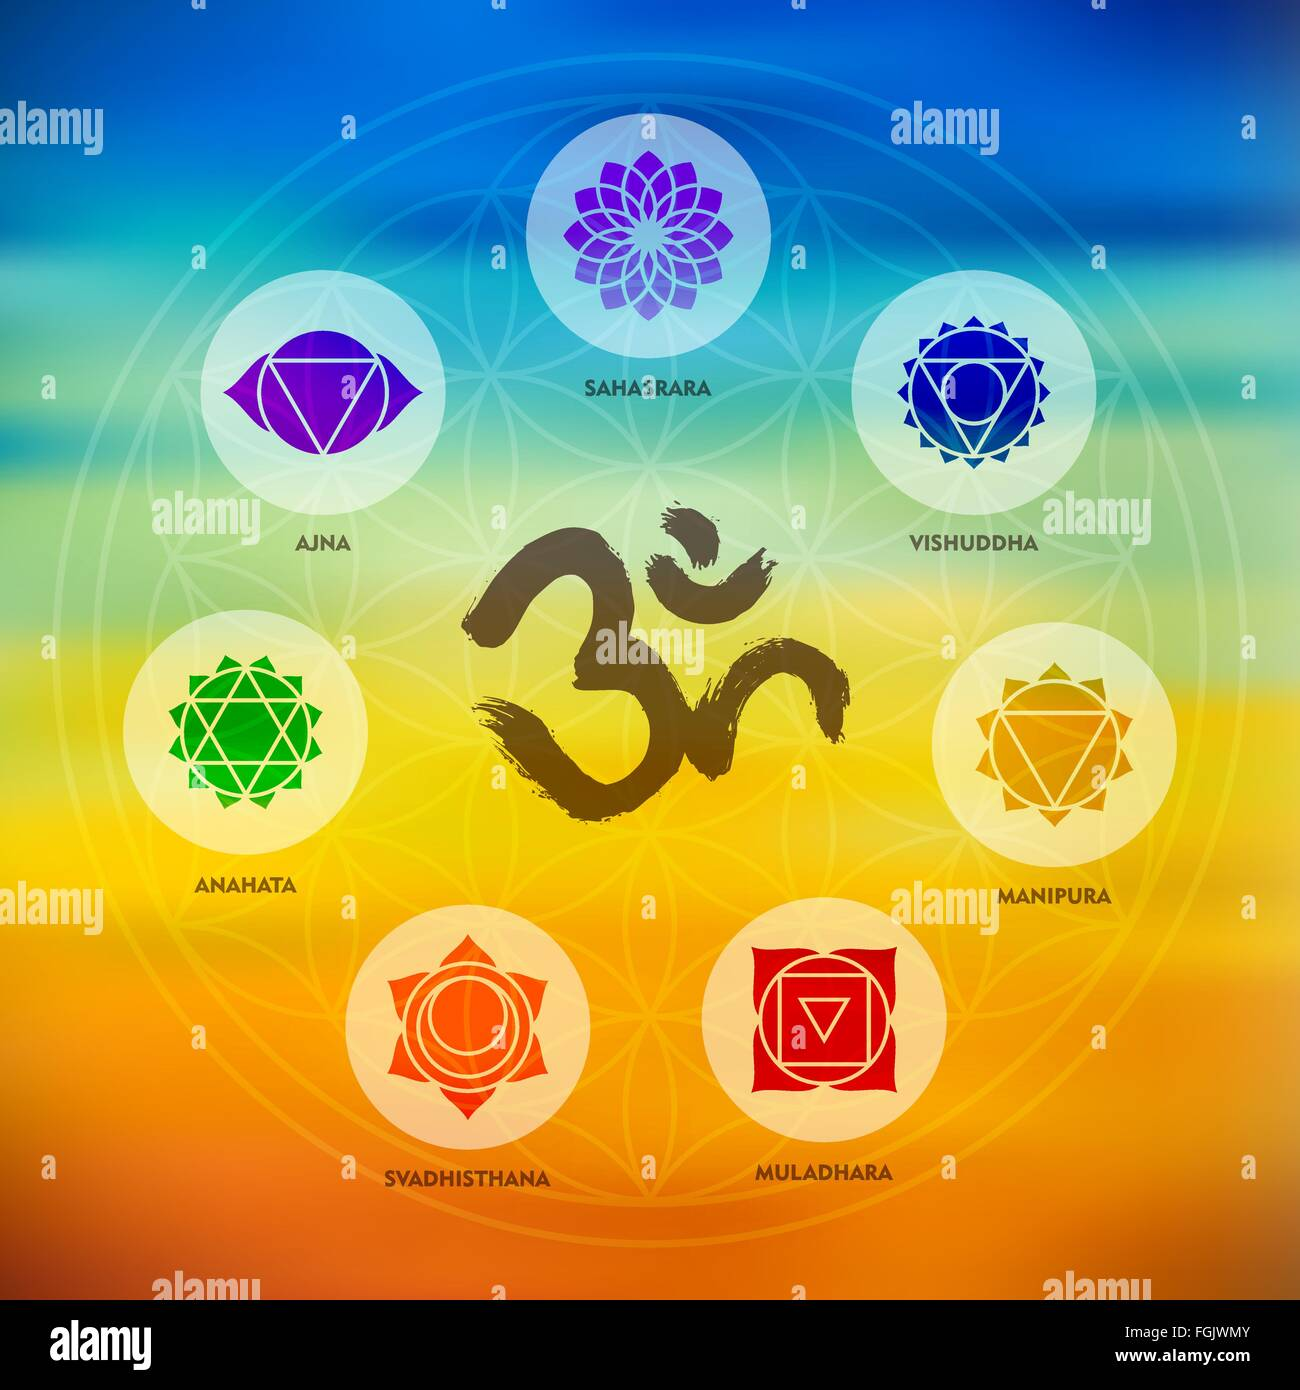 39e4b6b32e6 Chakra icons composition with om calligraphy and sacred geometry design on  colorful blur background. EPS10